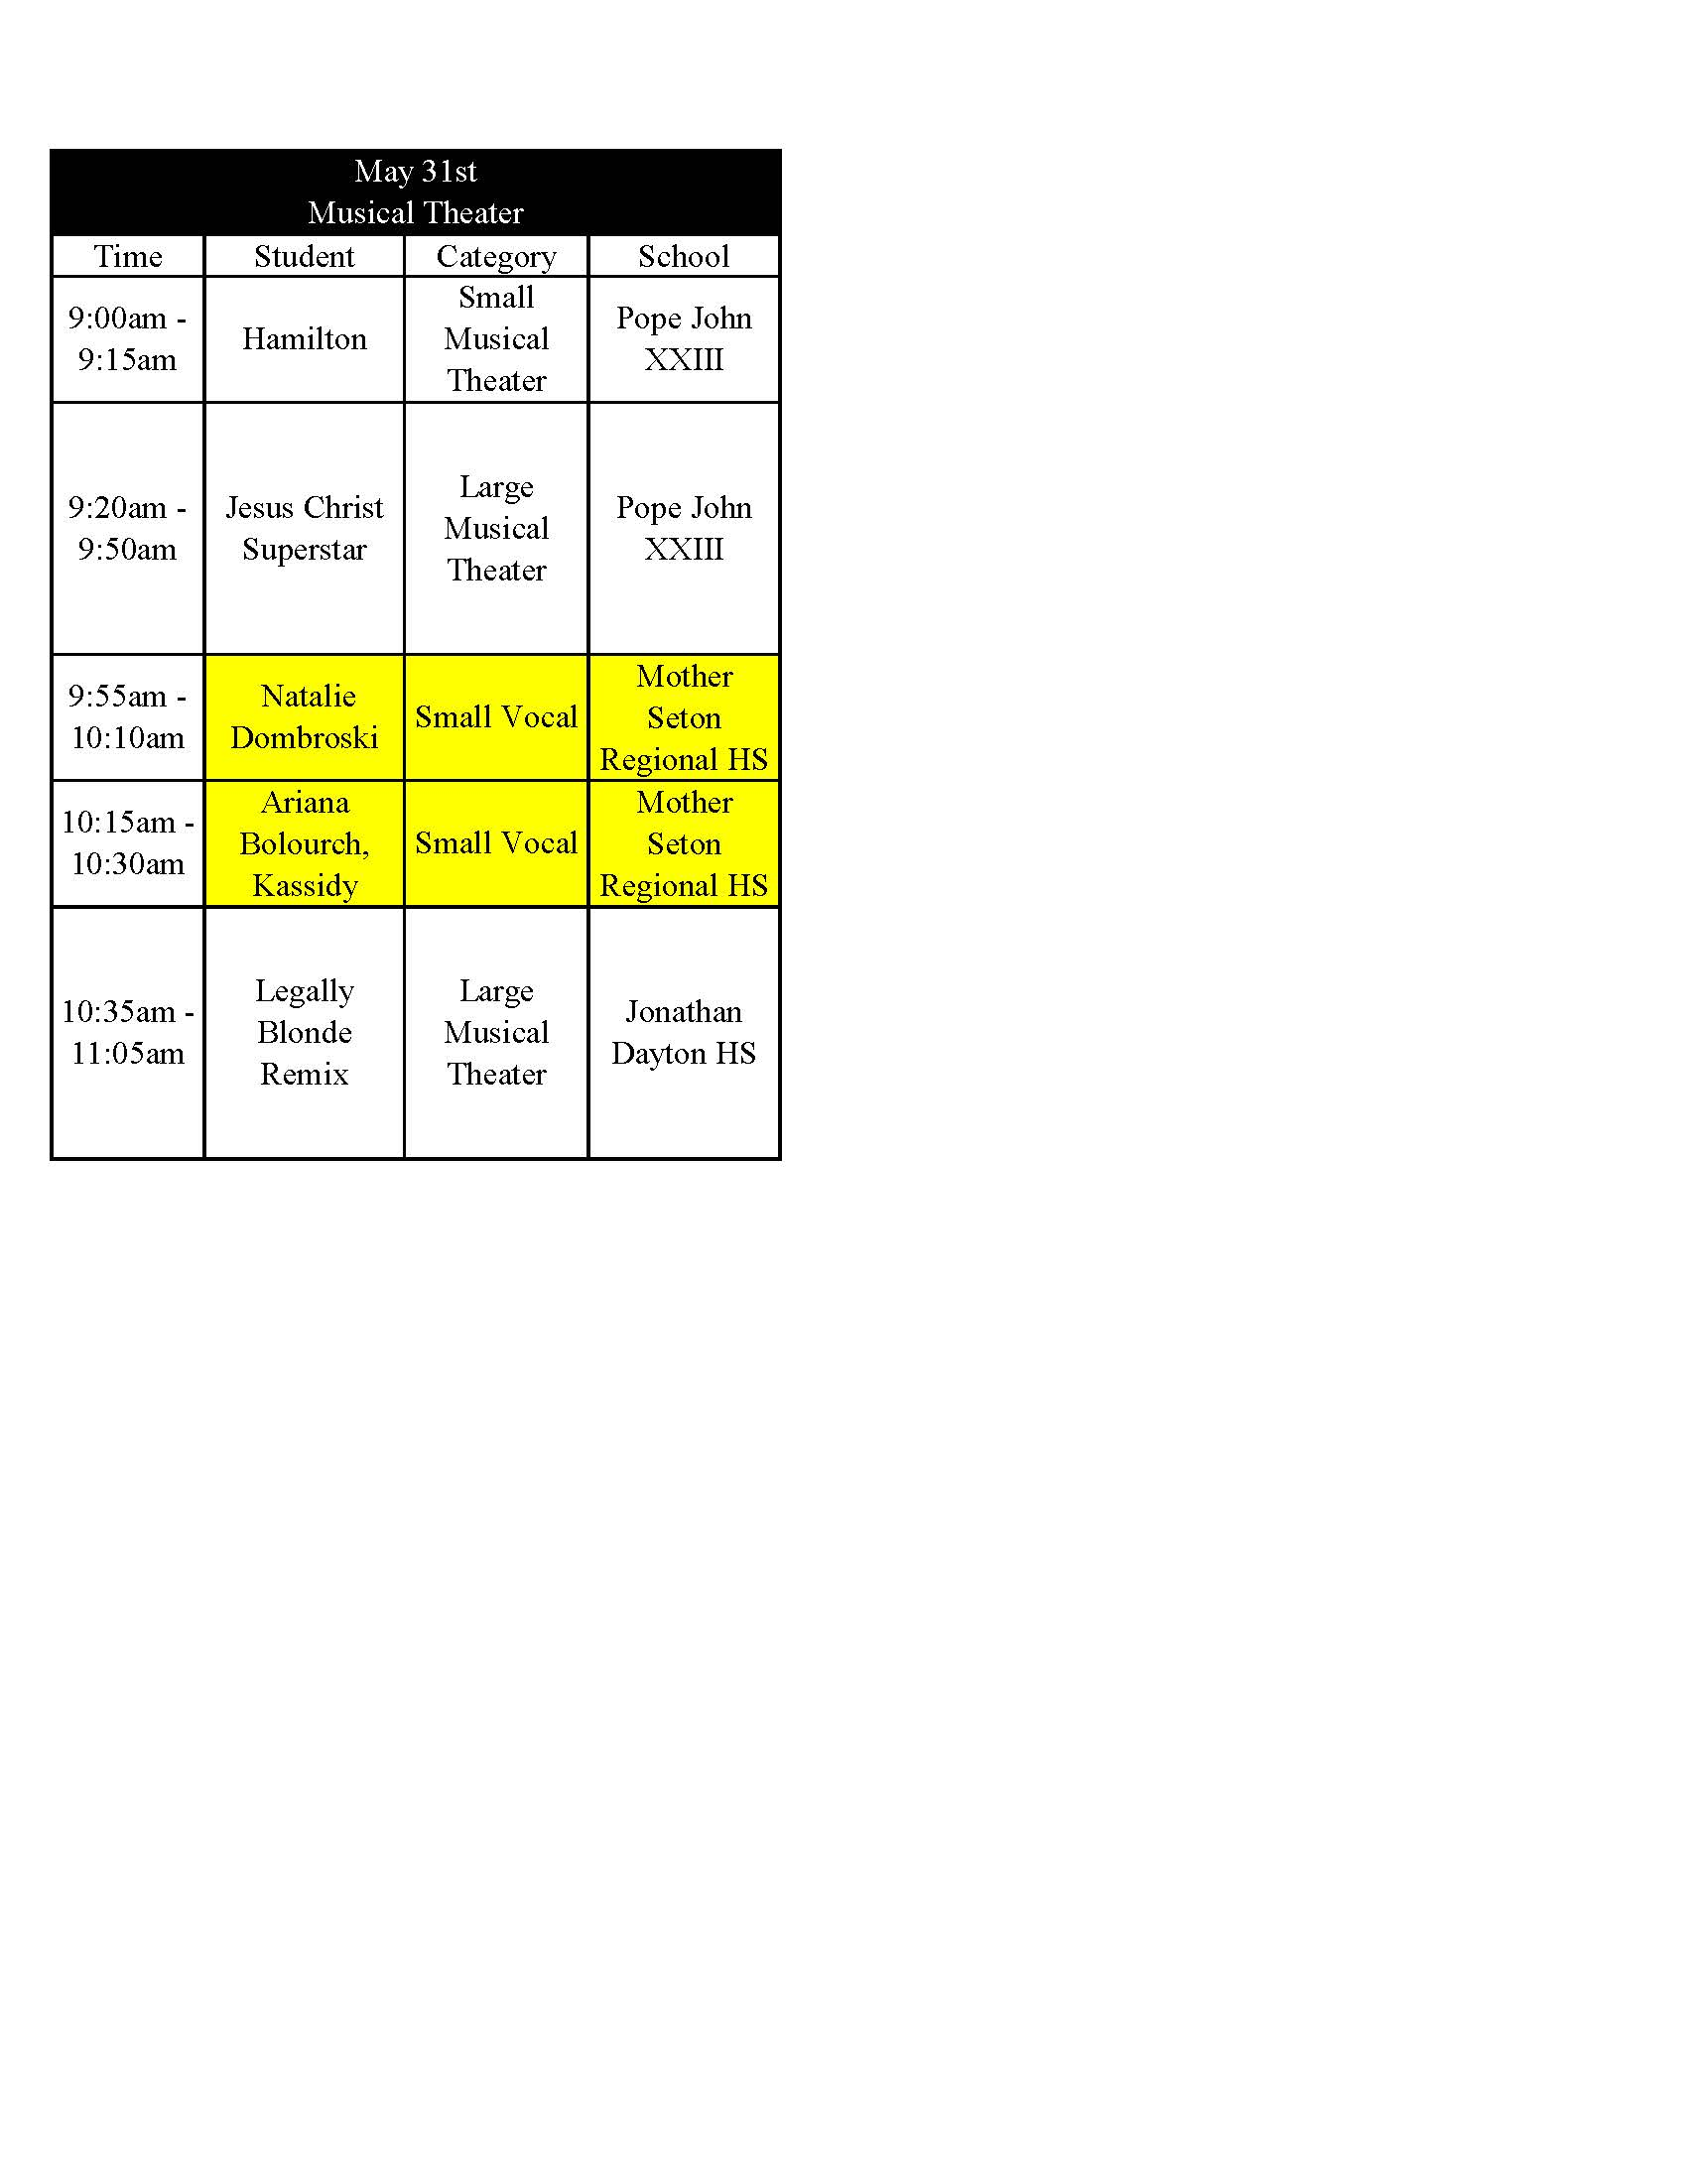 May 31 - MASTER Adjudication Schedule (2017)_Page_26_Page_6.jpg